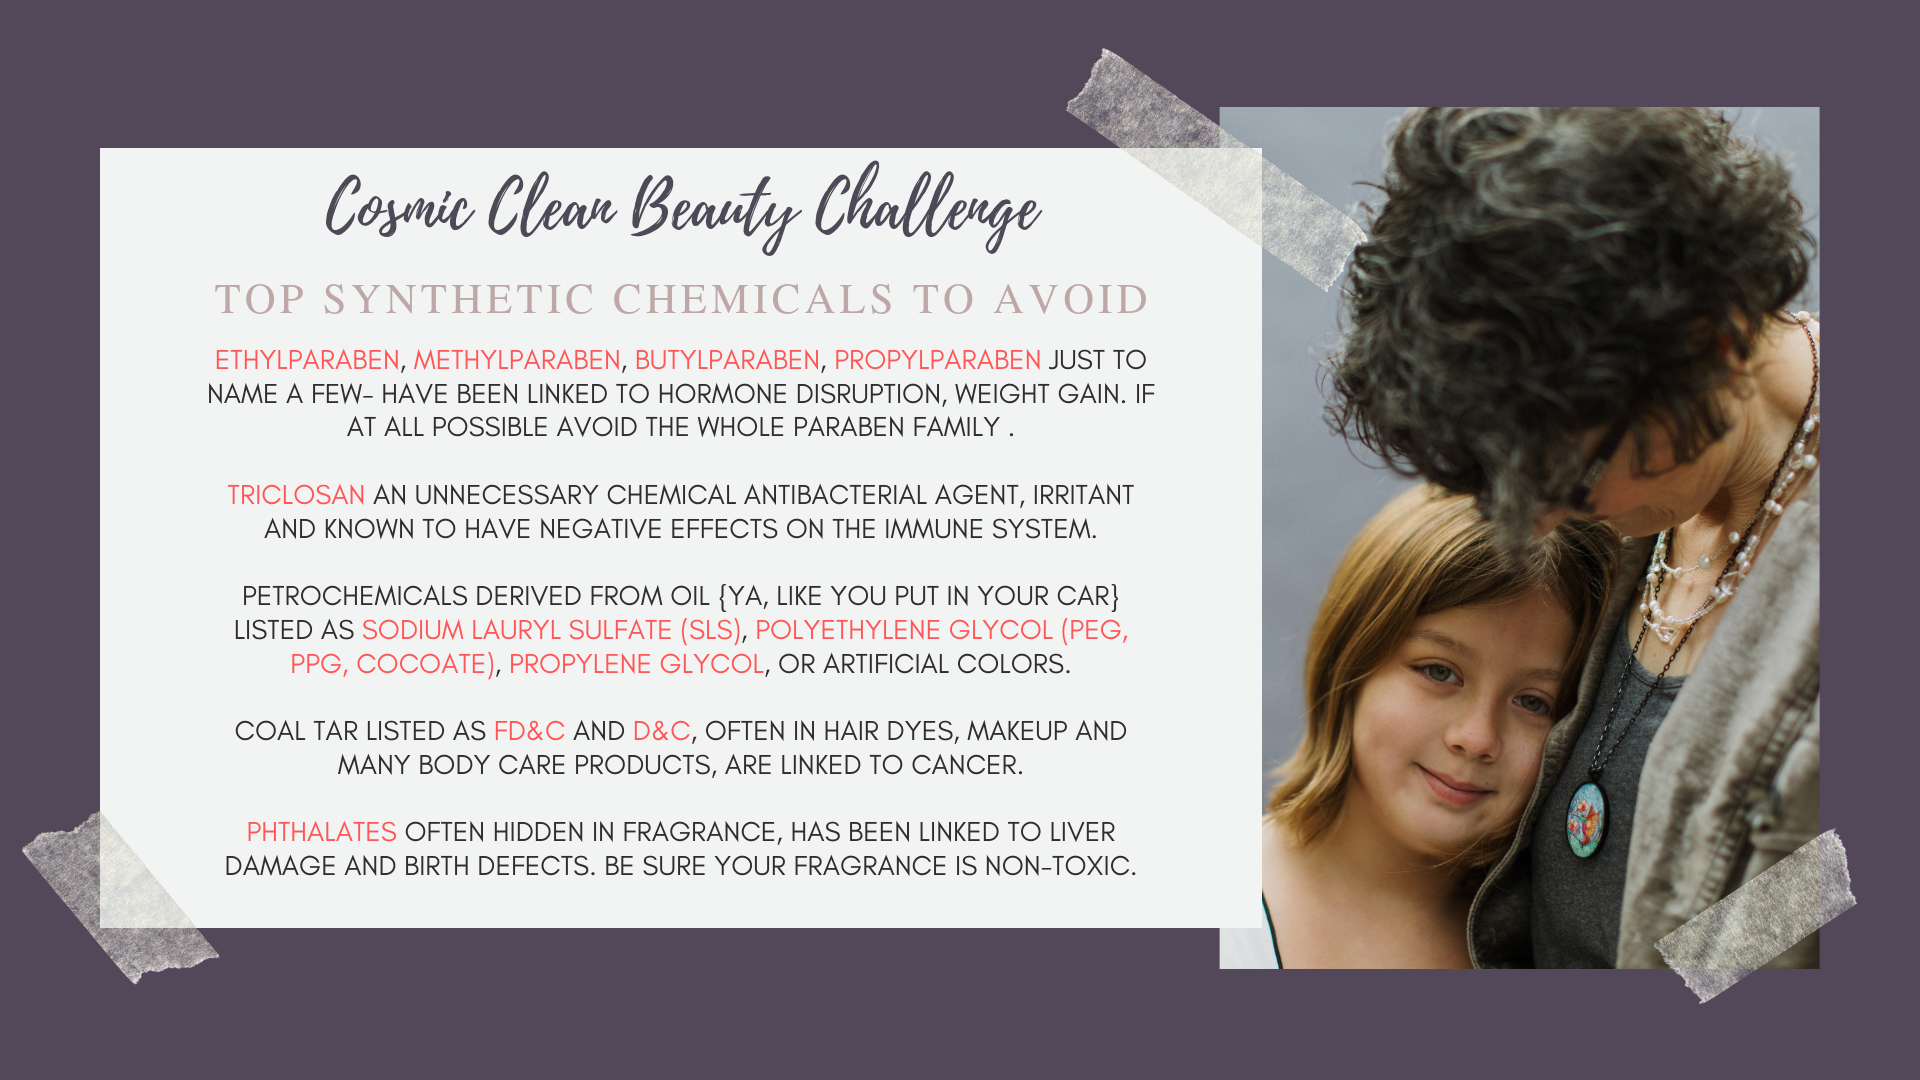 Cosmic Clean Beauty Challenge